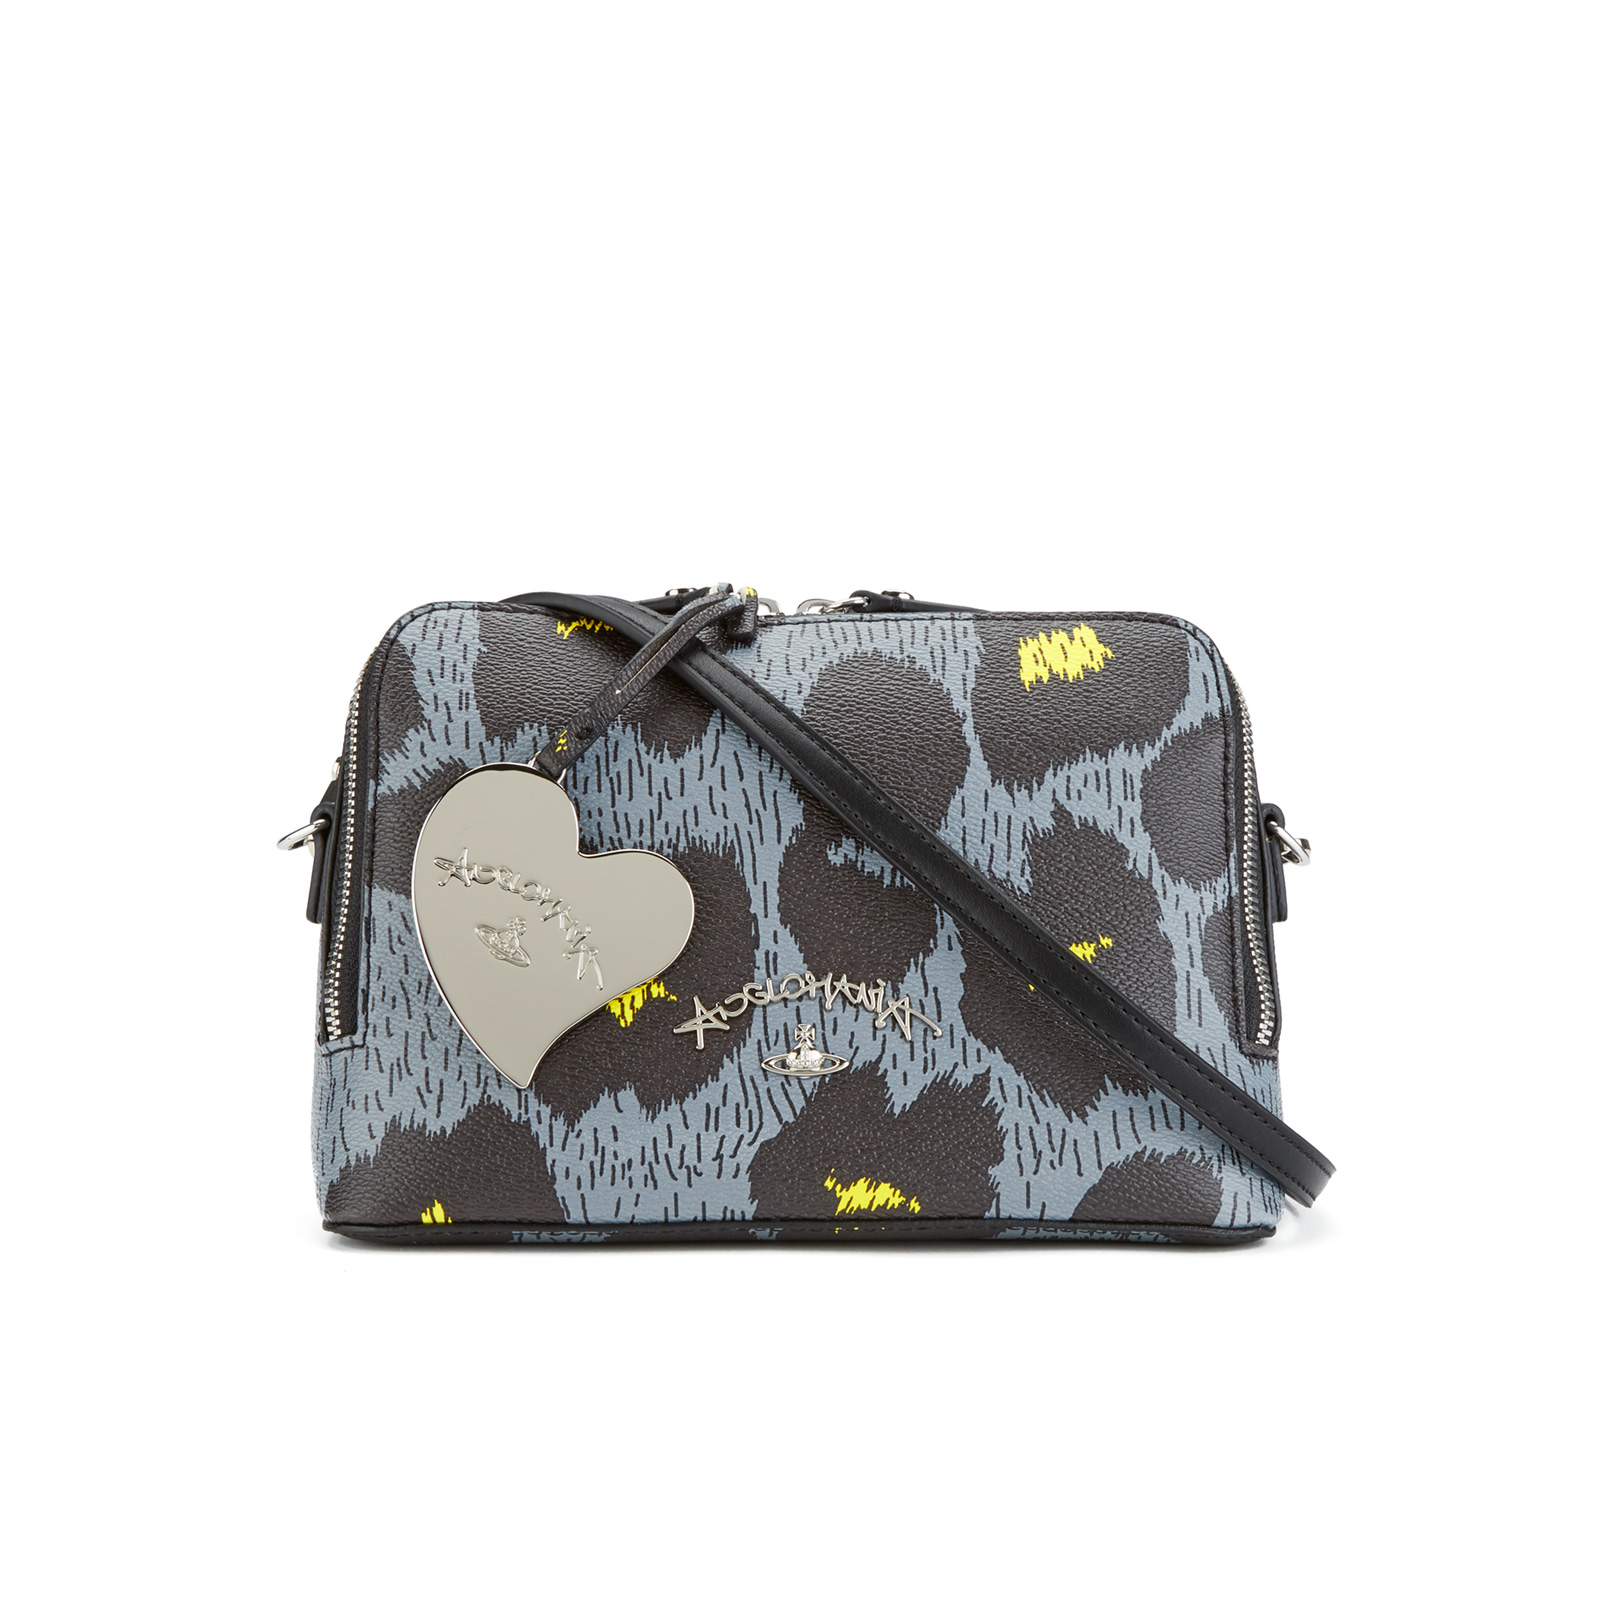 56a2d84a4c Vivienne Westwood Leopardmania Women's Small Cross Body - Grey - Free UK  Delivery over £50